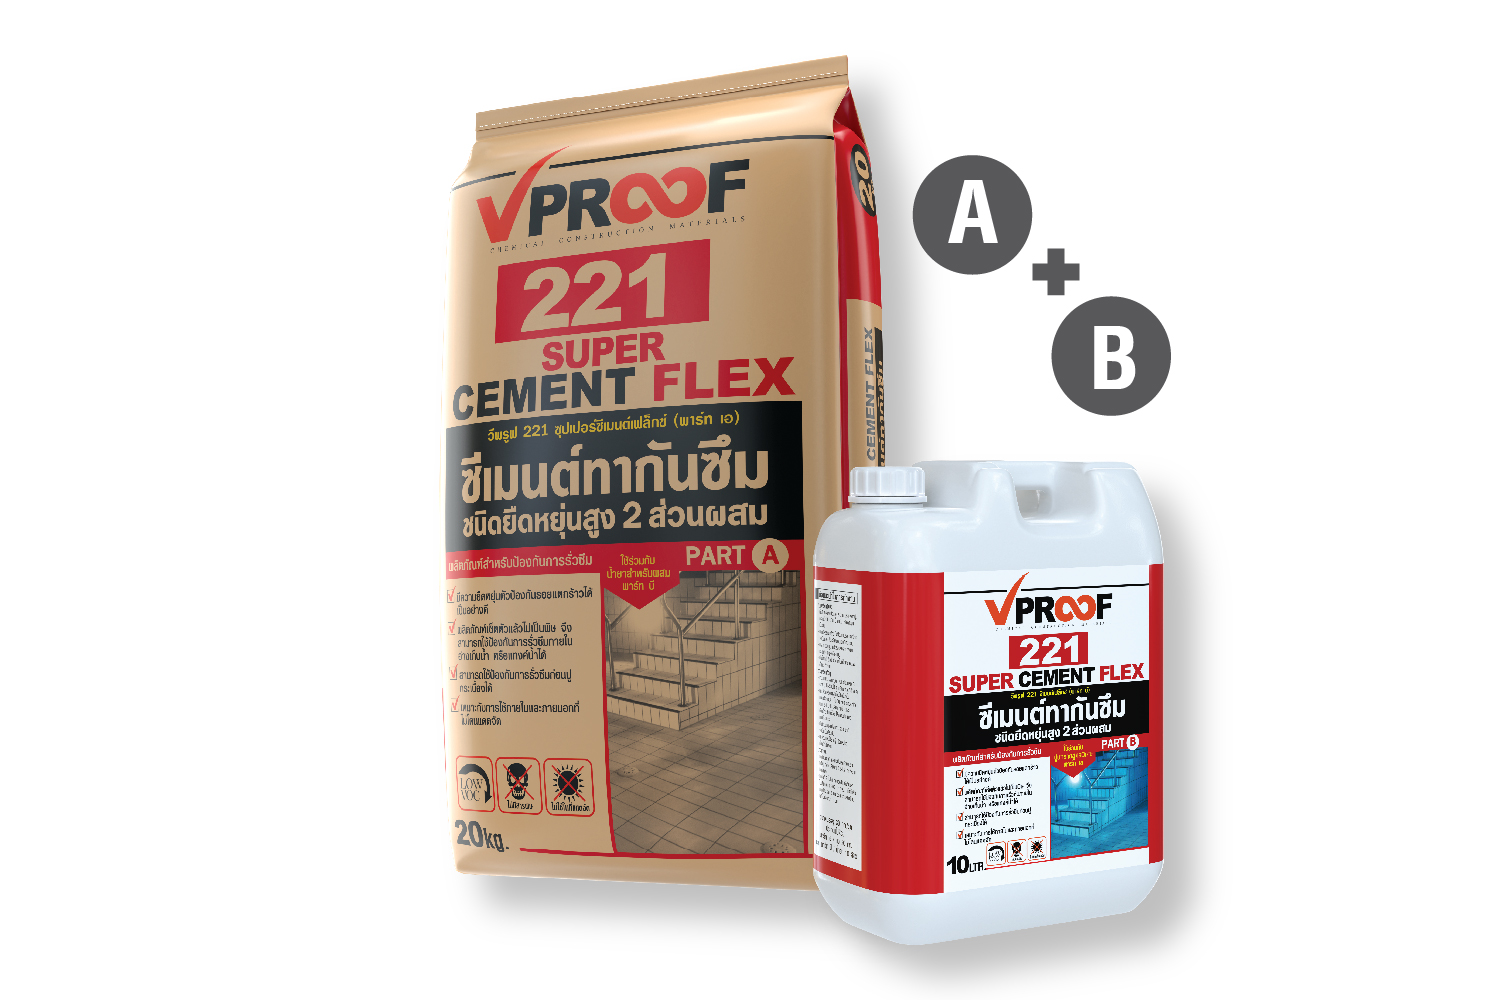 VPROOF 221 SUPER CEMENT FLEX